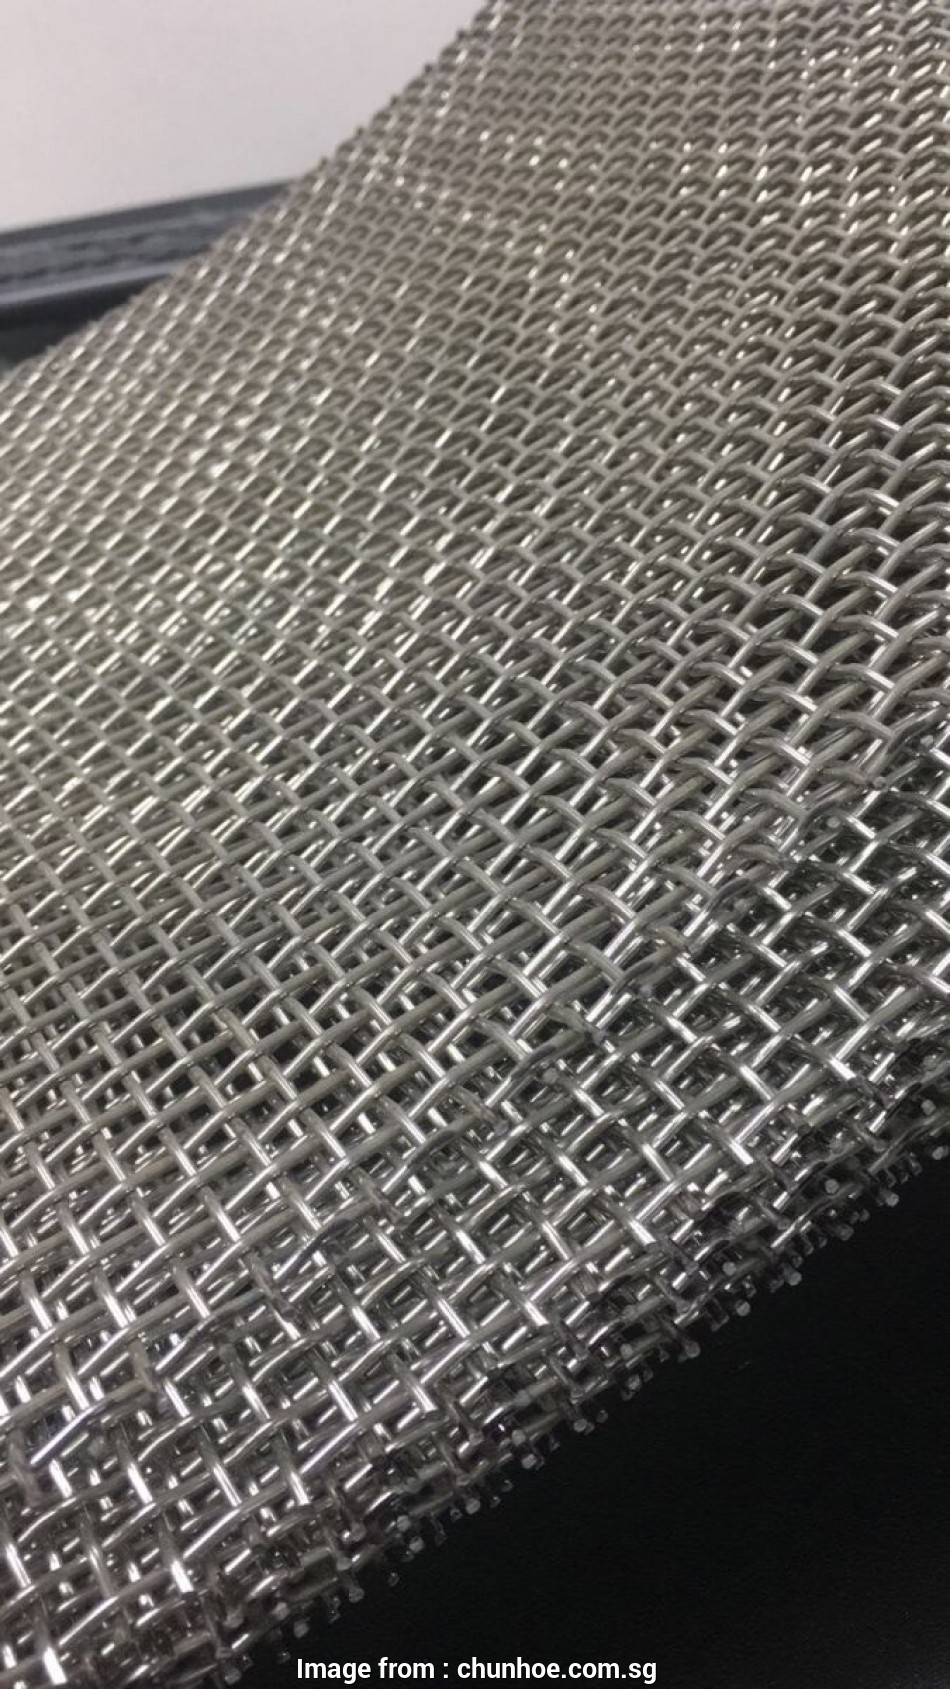 stainless steel wire mesh johor Plain Mesh Stainless Steel Singapore Singapore Manufacturer 9 Perfect Stainless Steel Wire Mesh Johor Solutions